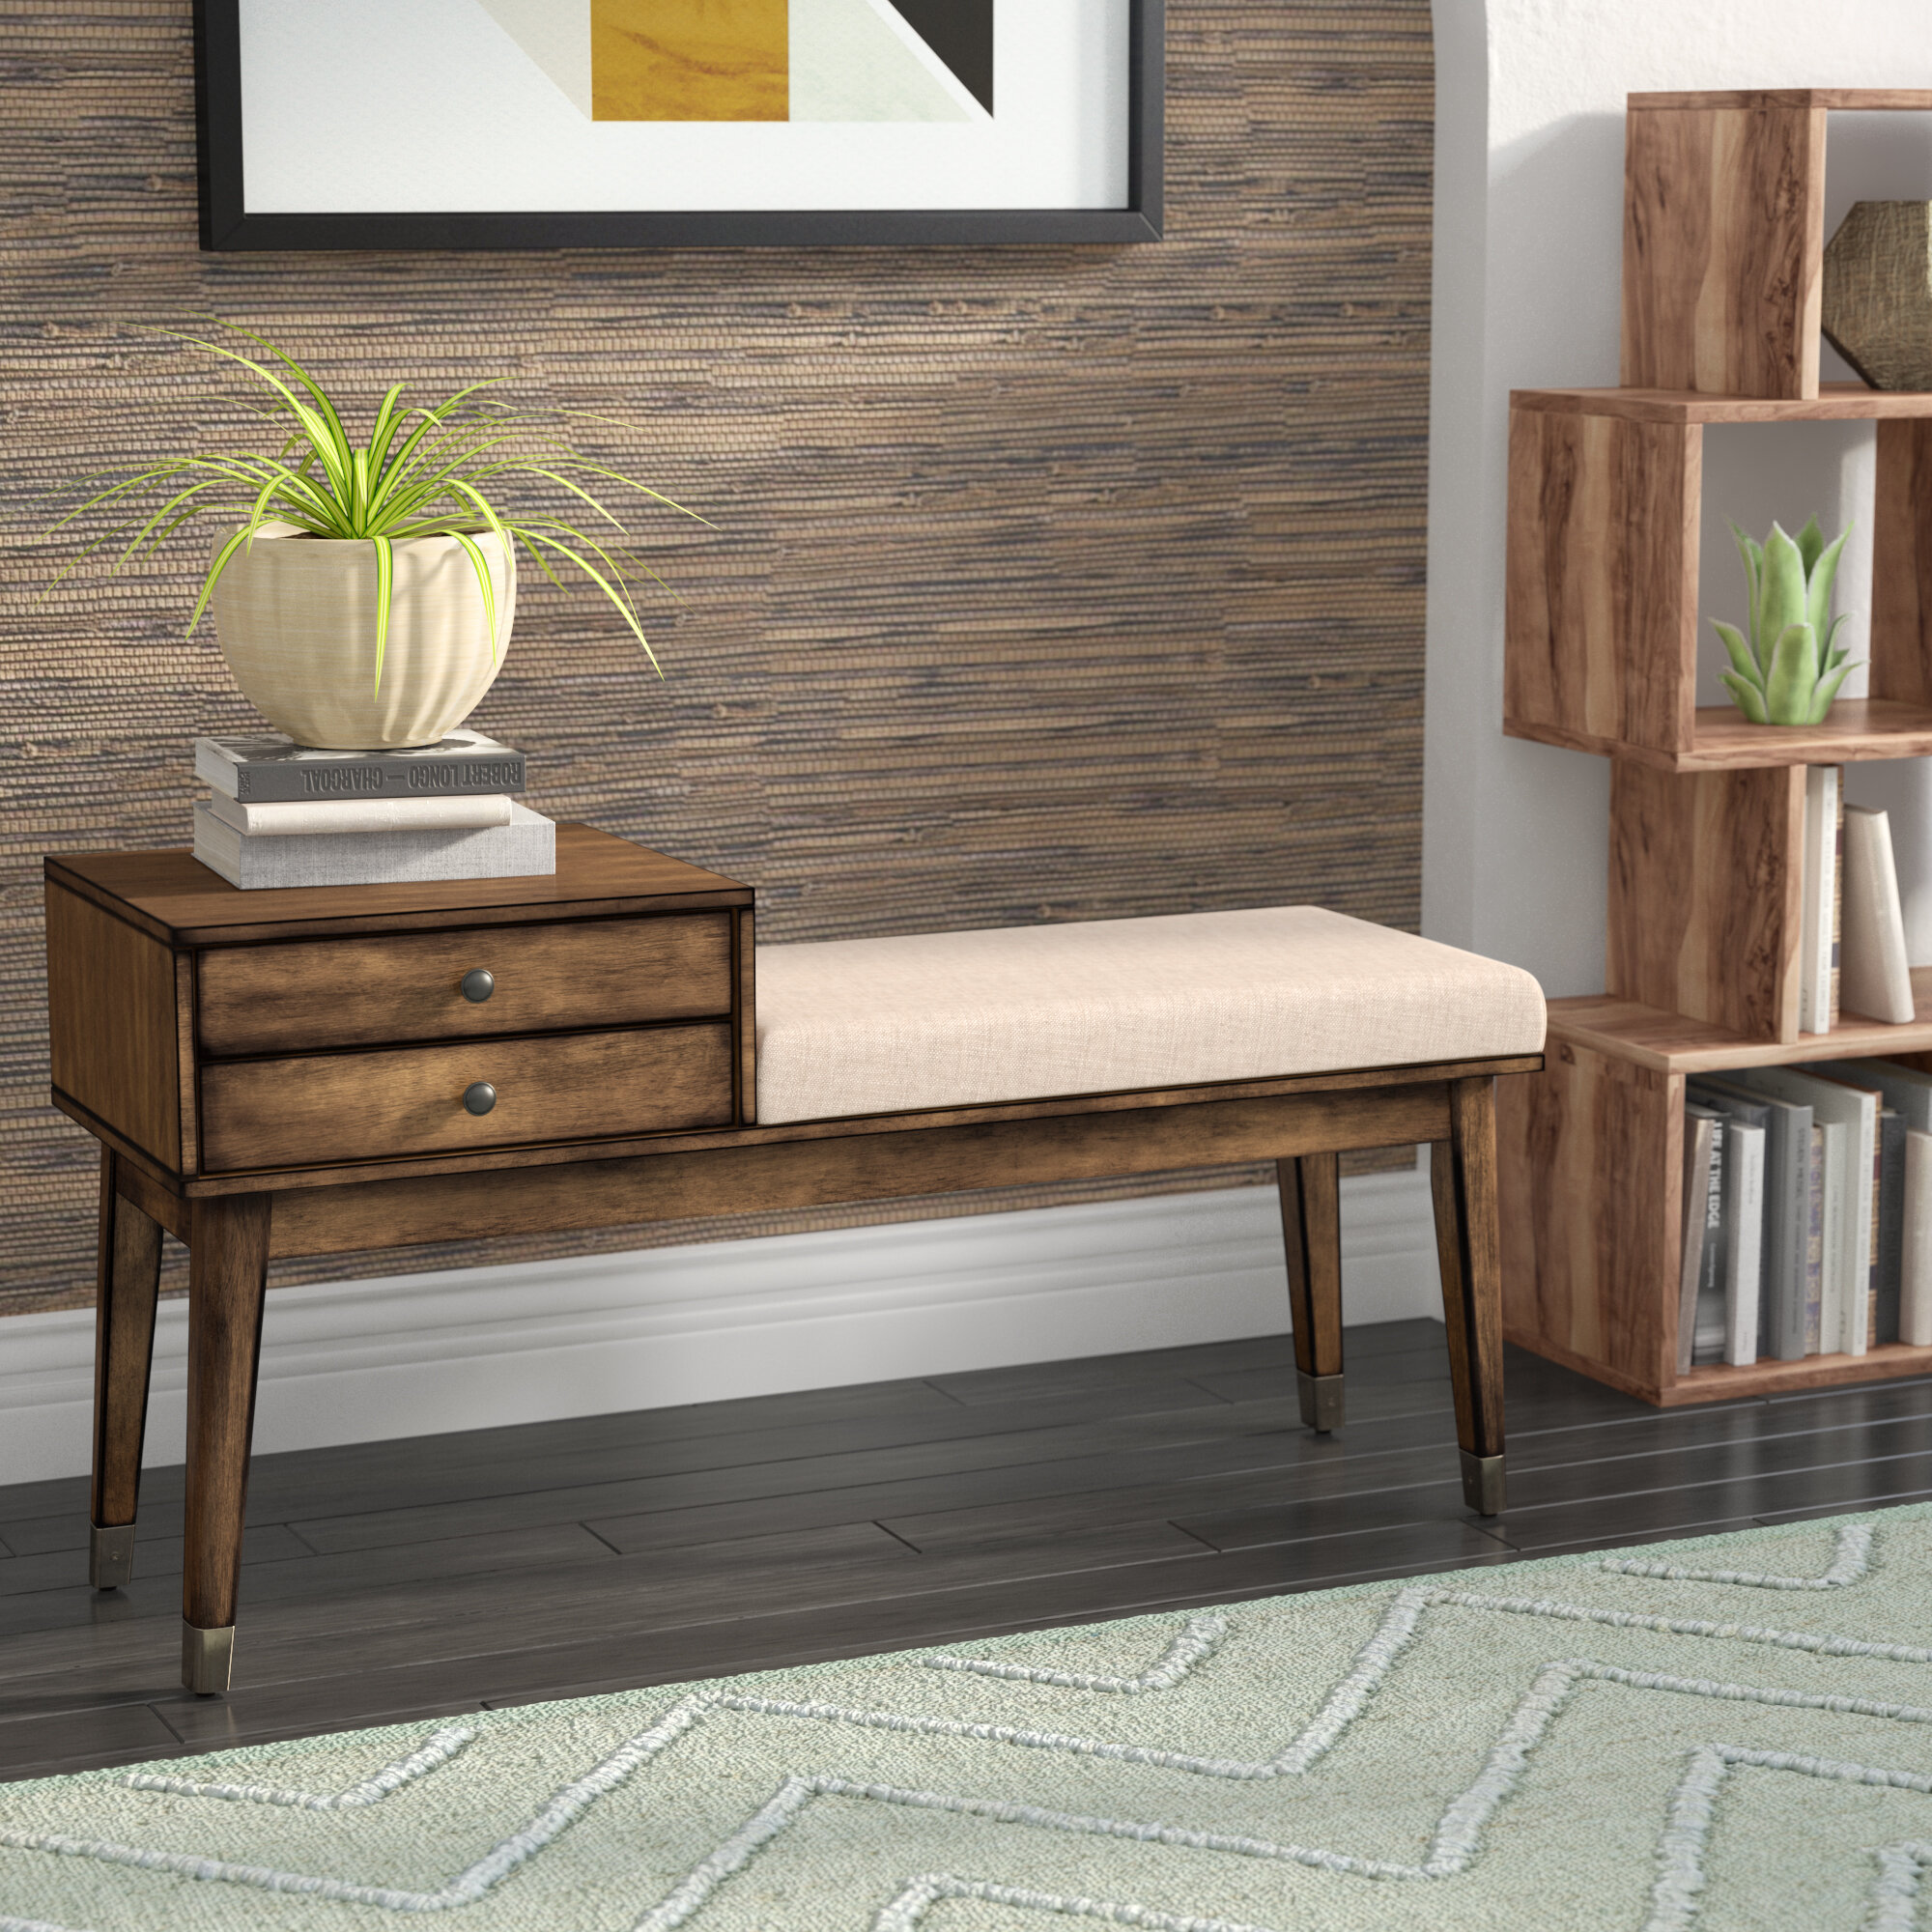 solution and wood plans solutions cube bench furniture outstanding bin bins pieces wooden end tables storage table shelf puzzle